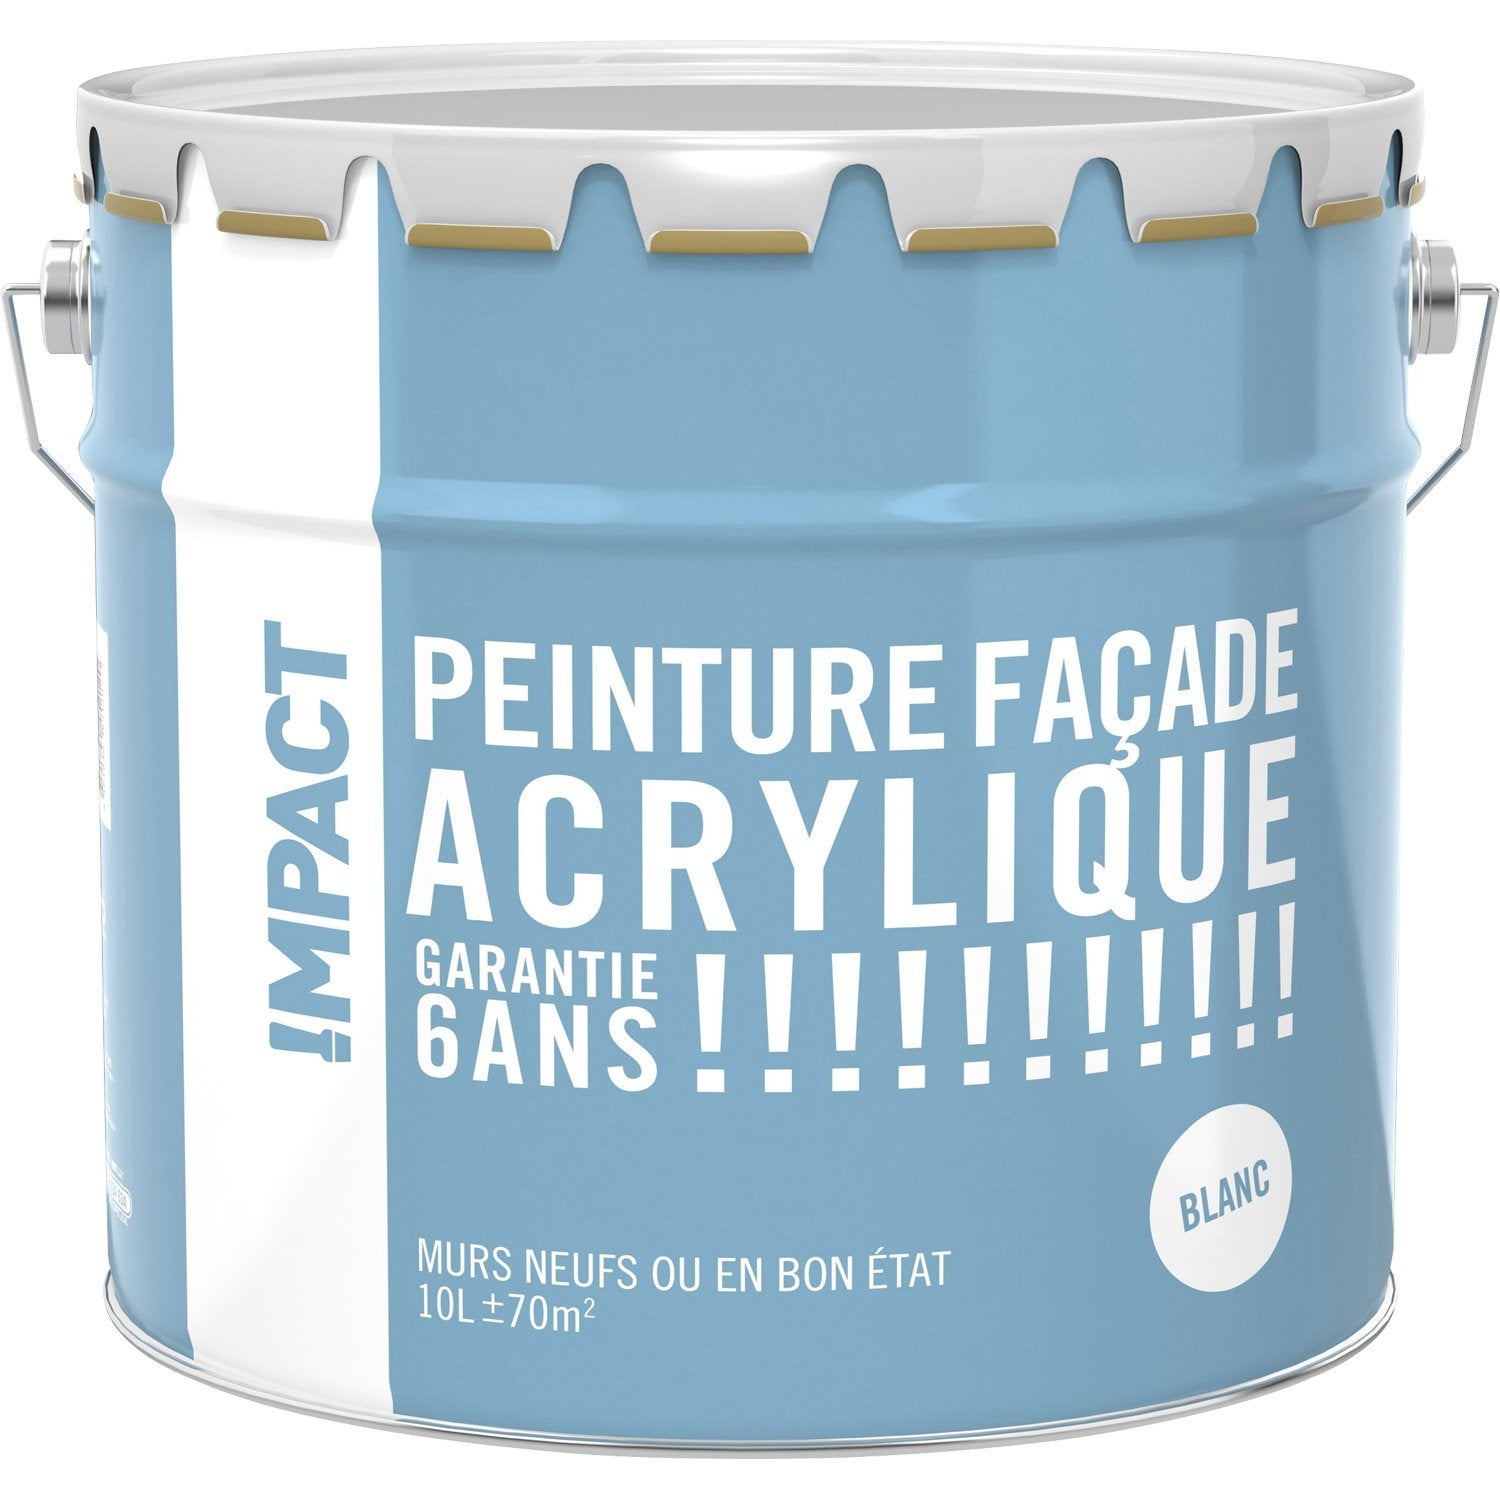 peinture fa ade acrylique impact blanc 10 l leroy merlin. Black Bedroom Furniture Sets. Home Design Ideas